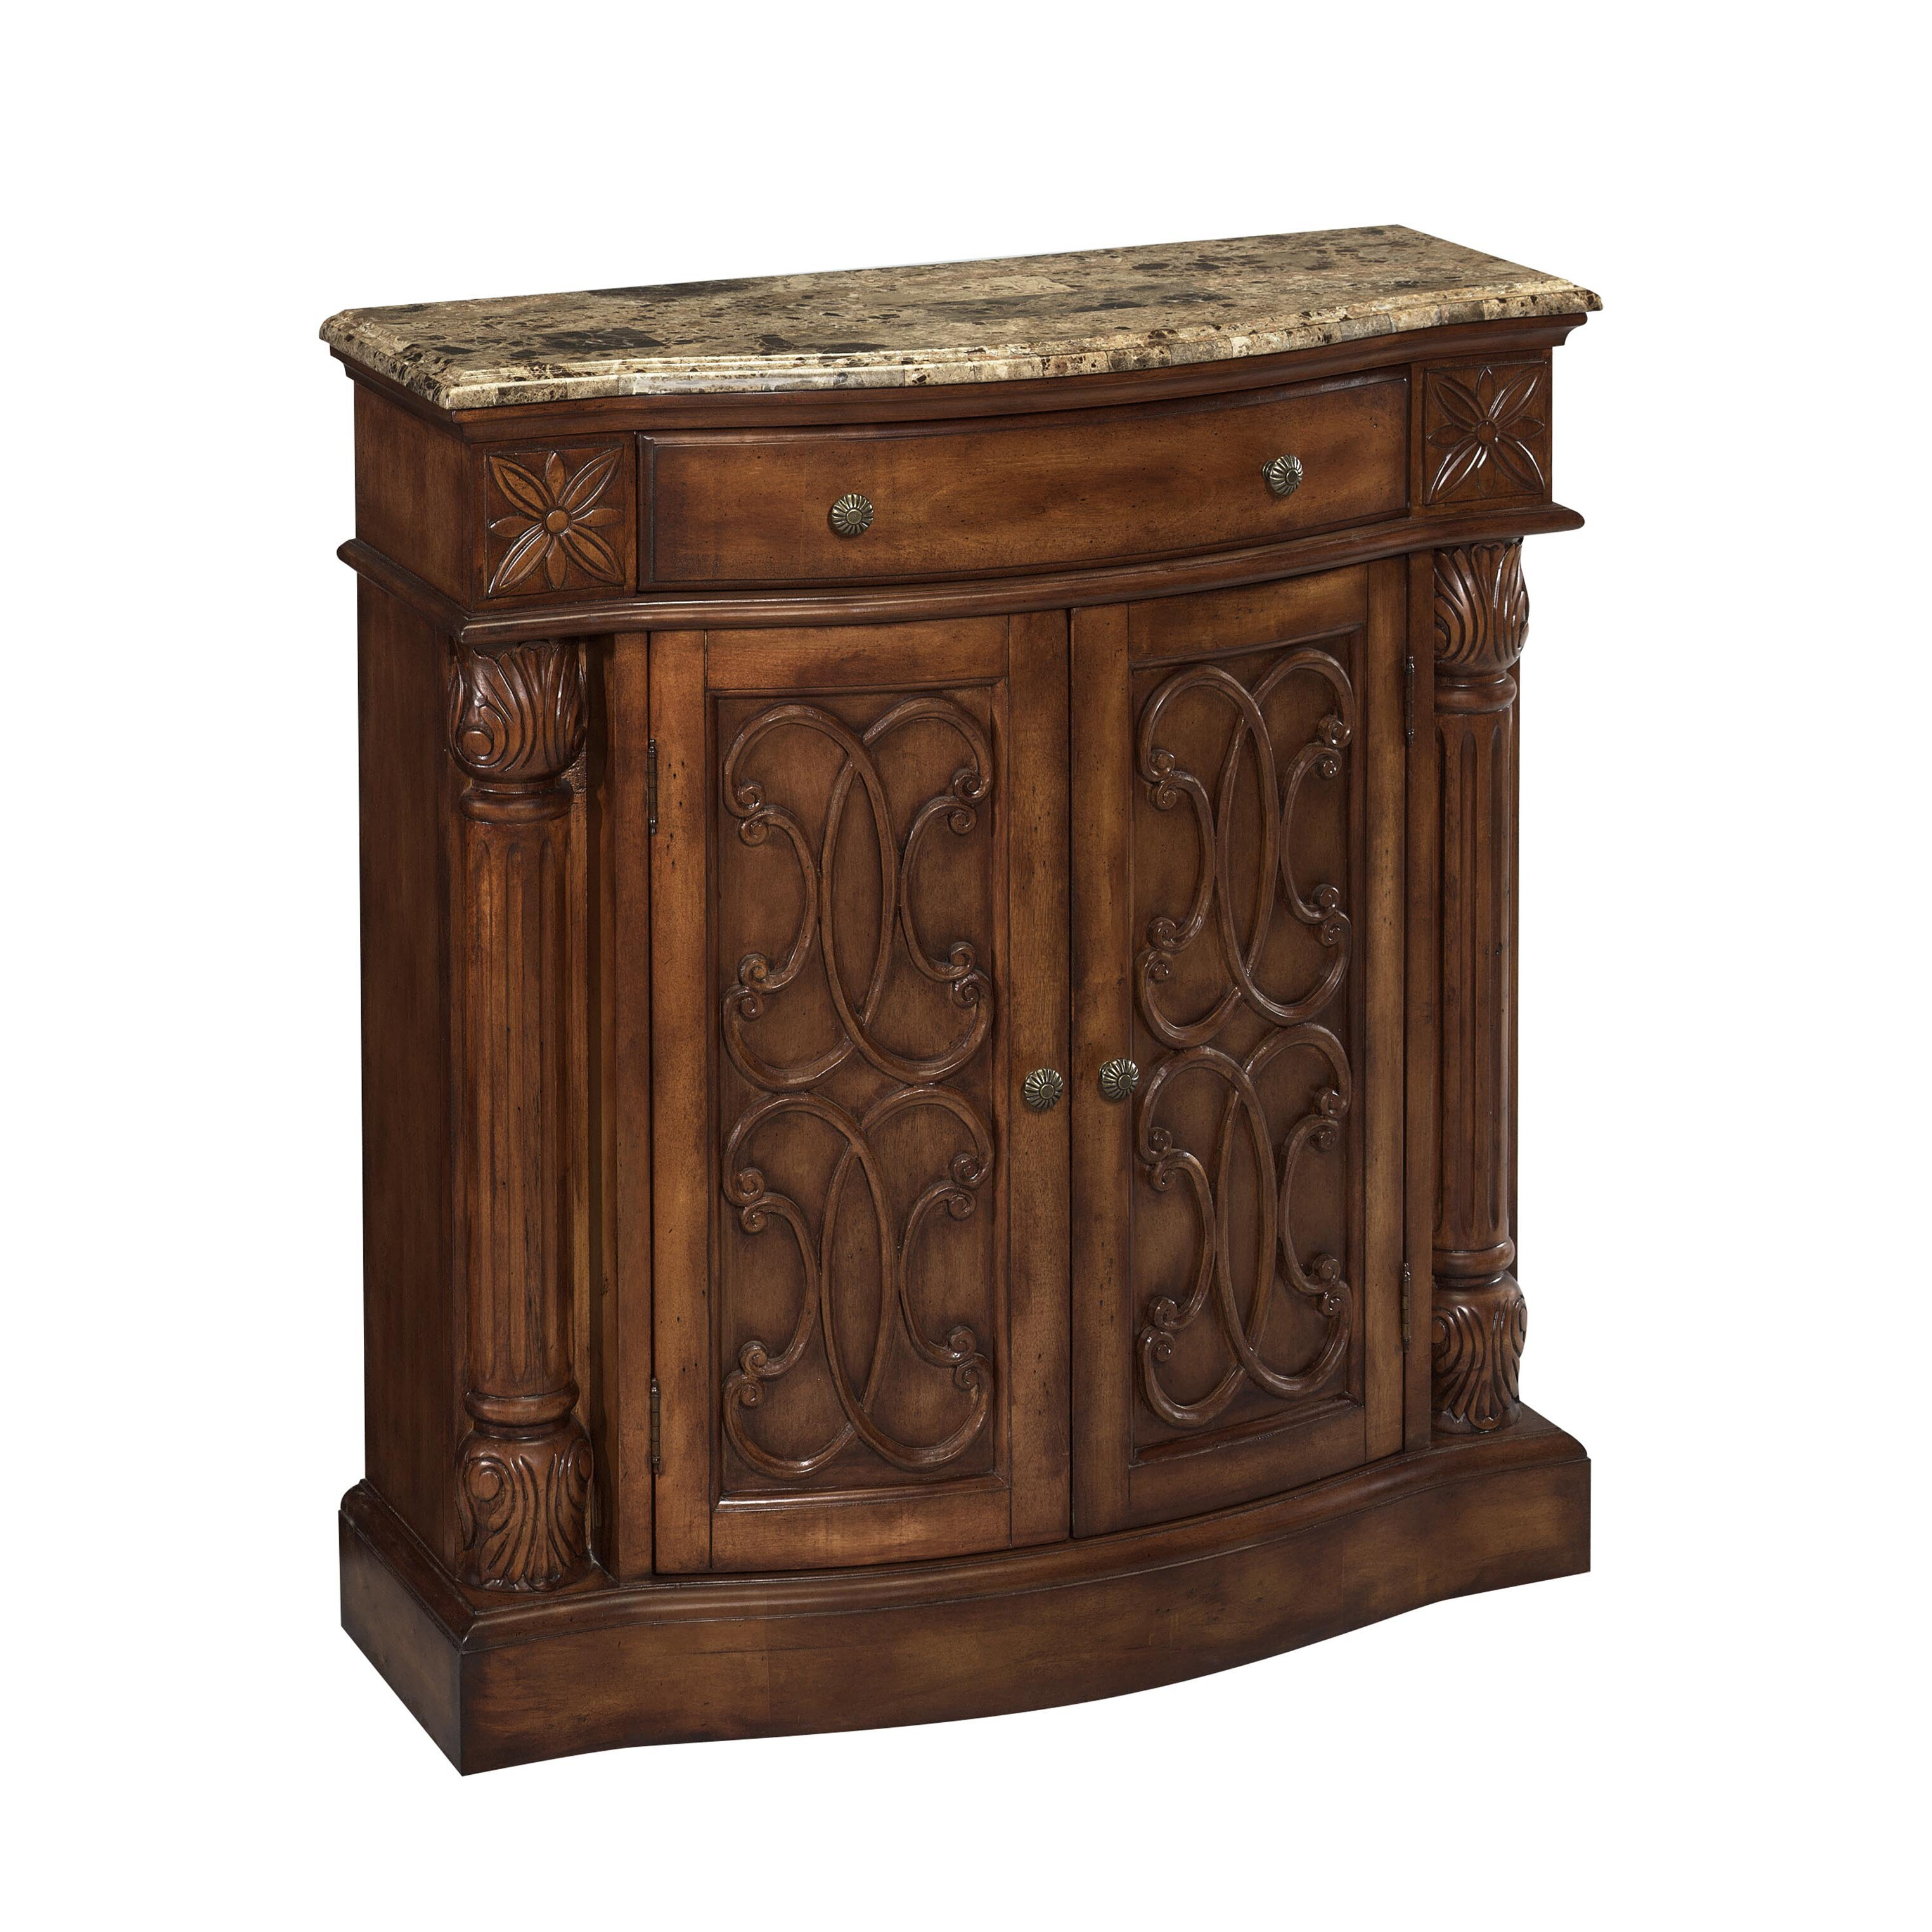 Stein World Monte Carlo Narrow Cabinet & Reviews